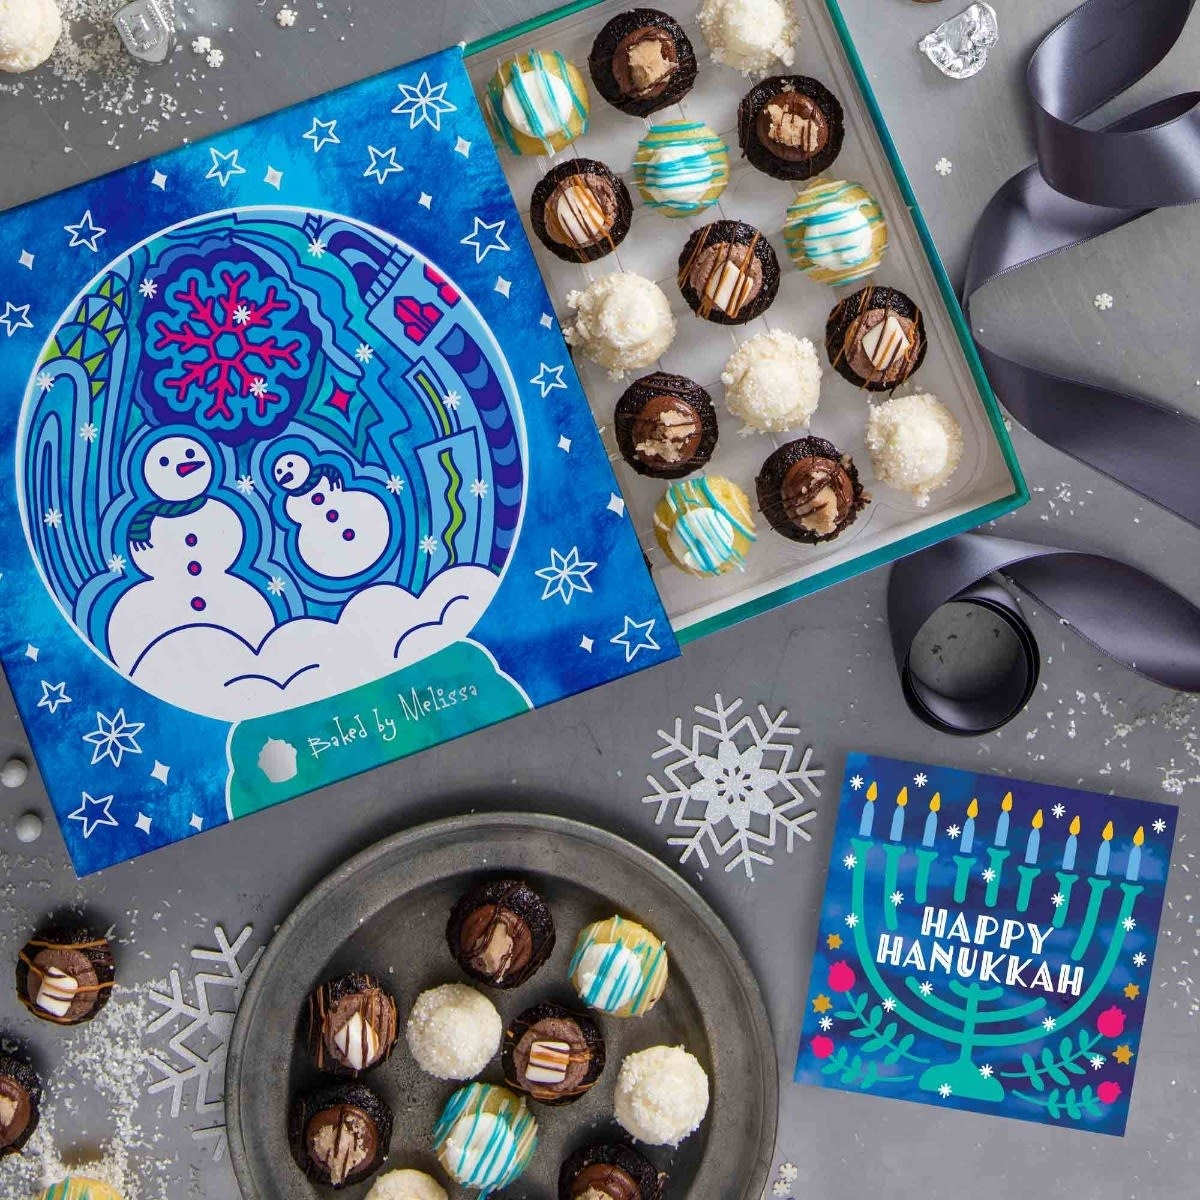 box with blue and pink snowman design with colorful mini cupcakes inside and a card with a menorah that says happy hanukkah